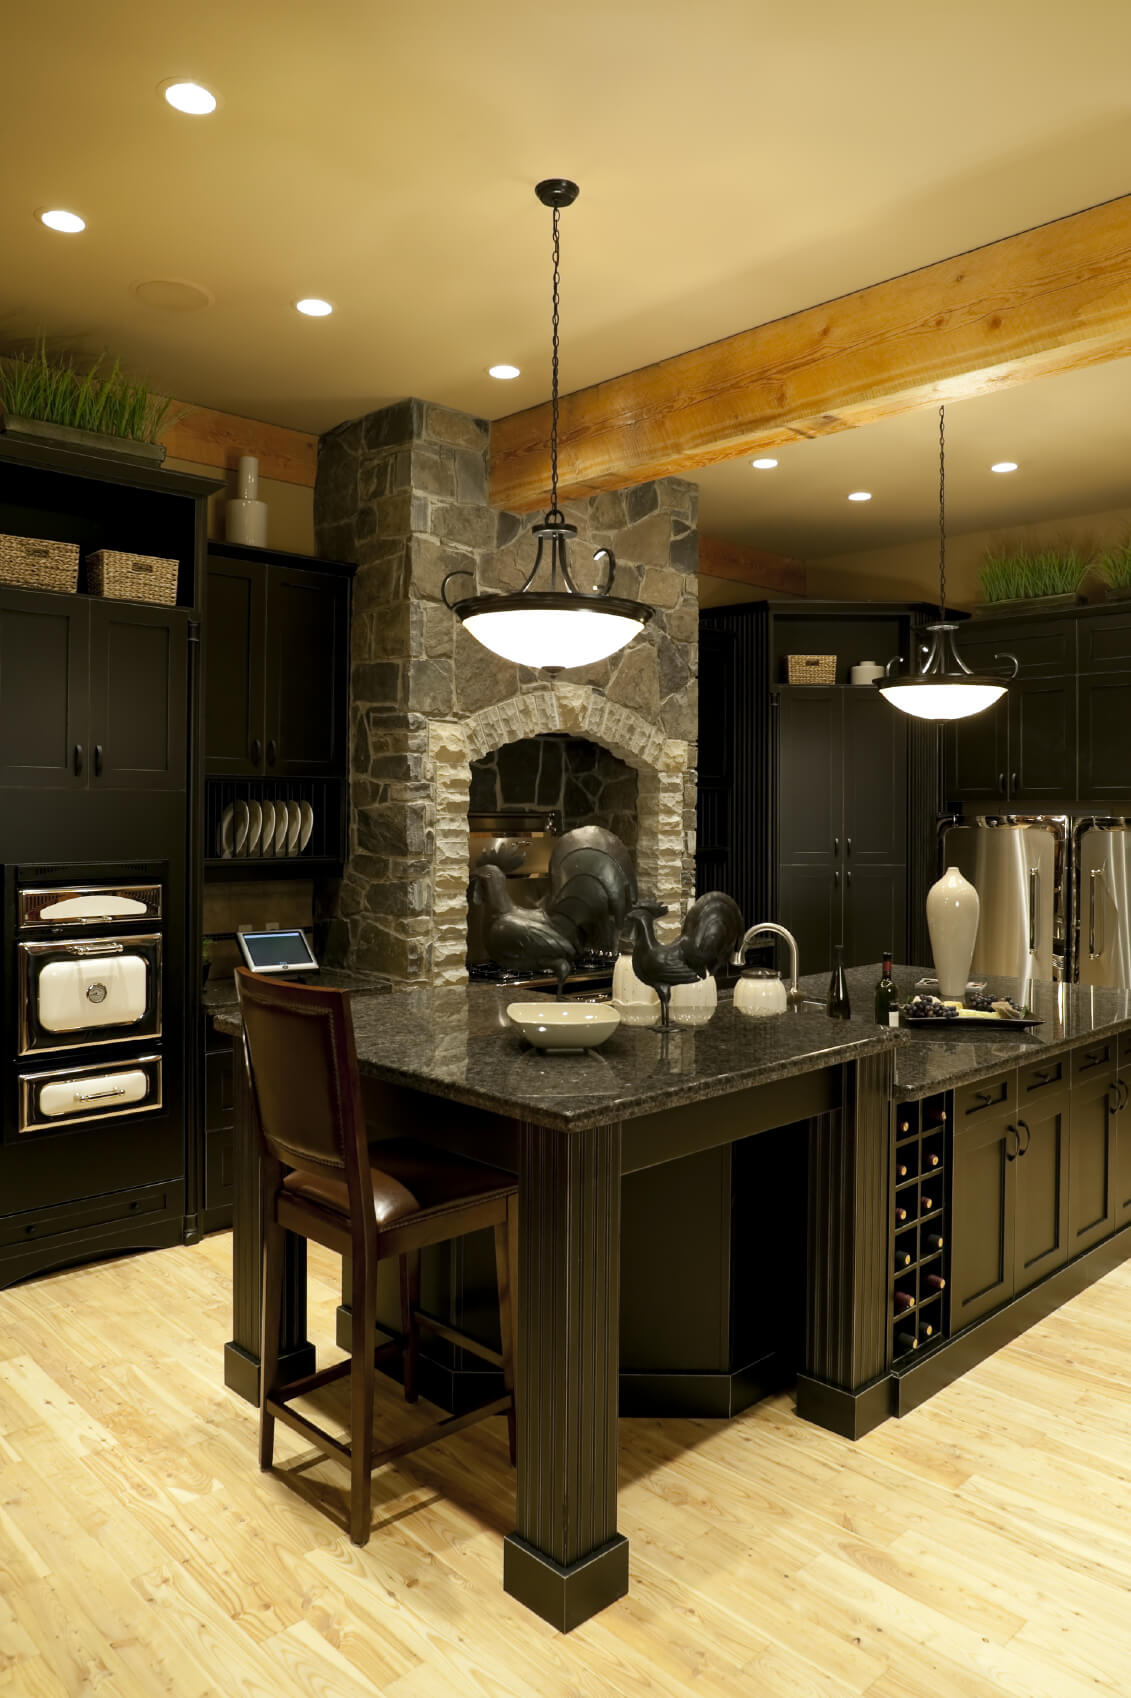 Luxury Black Kitchen With 2 Tier Island And Light Wood Ceiling Beams